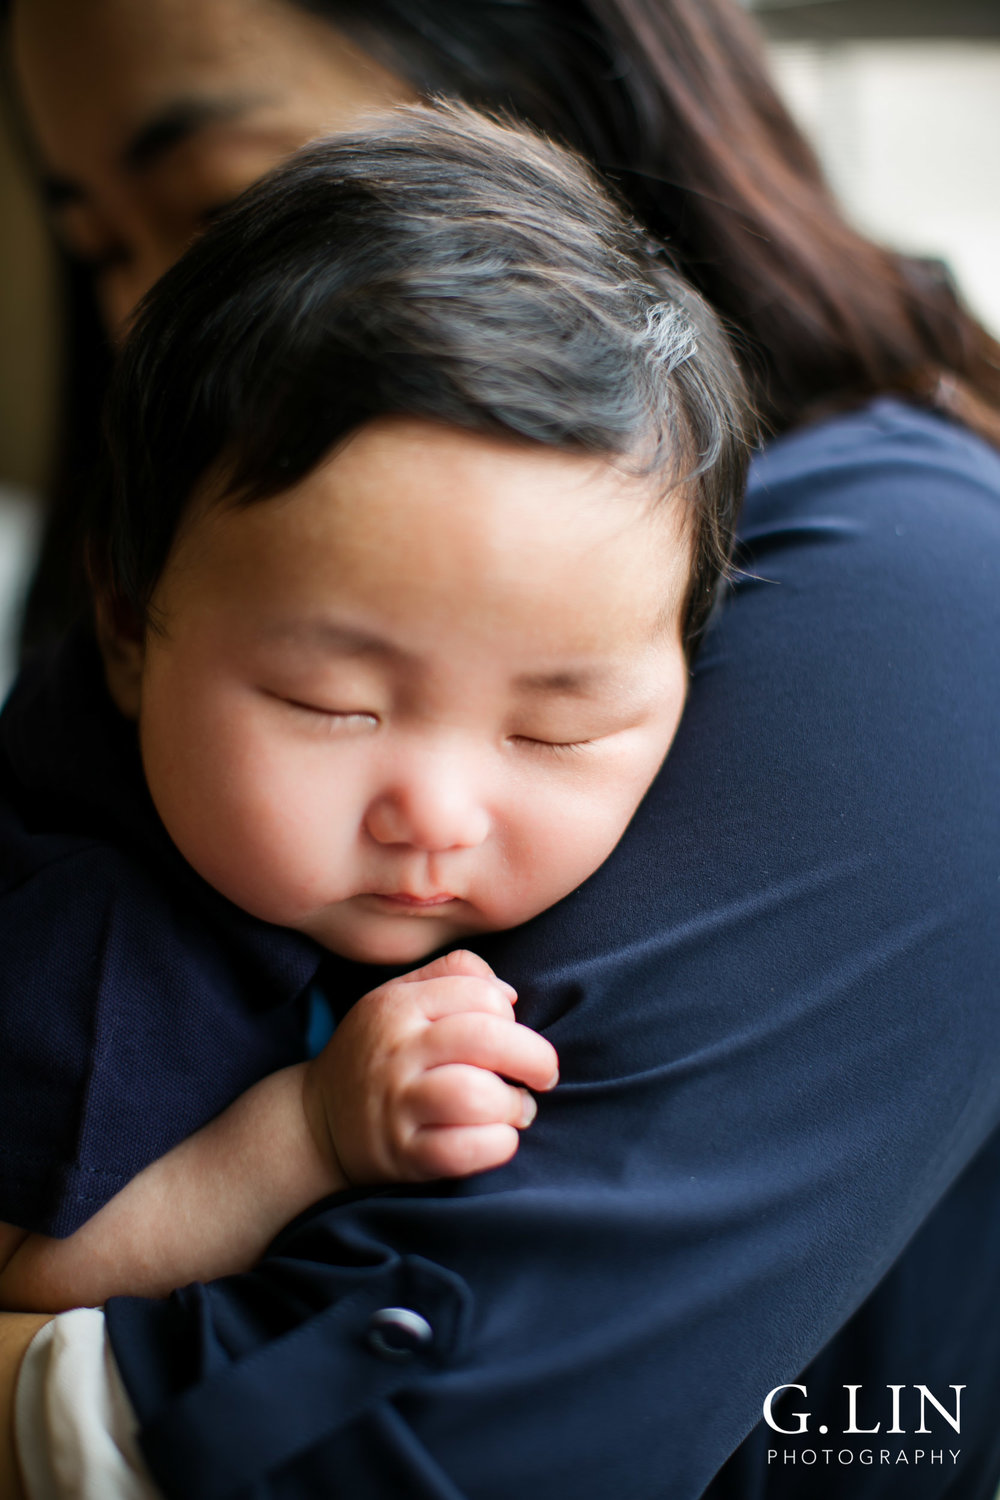 Durham Family Photographer | G. Lin Photography | Baby sleeping on mom's shoulder